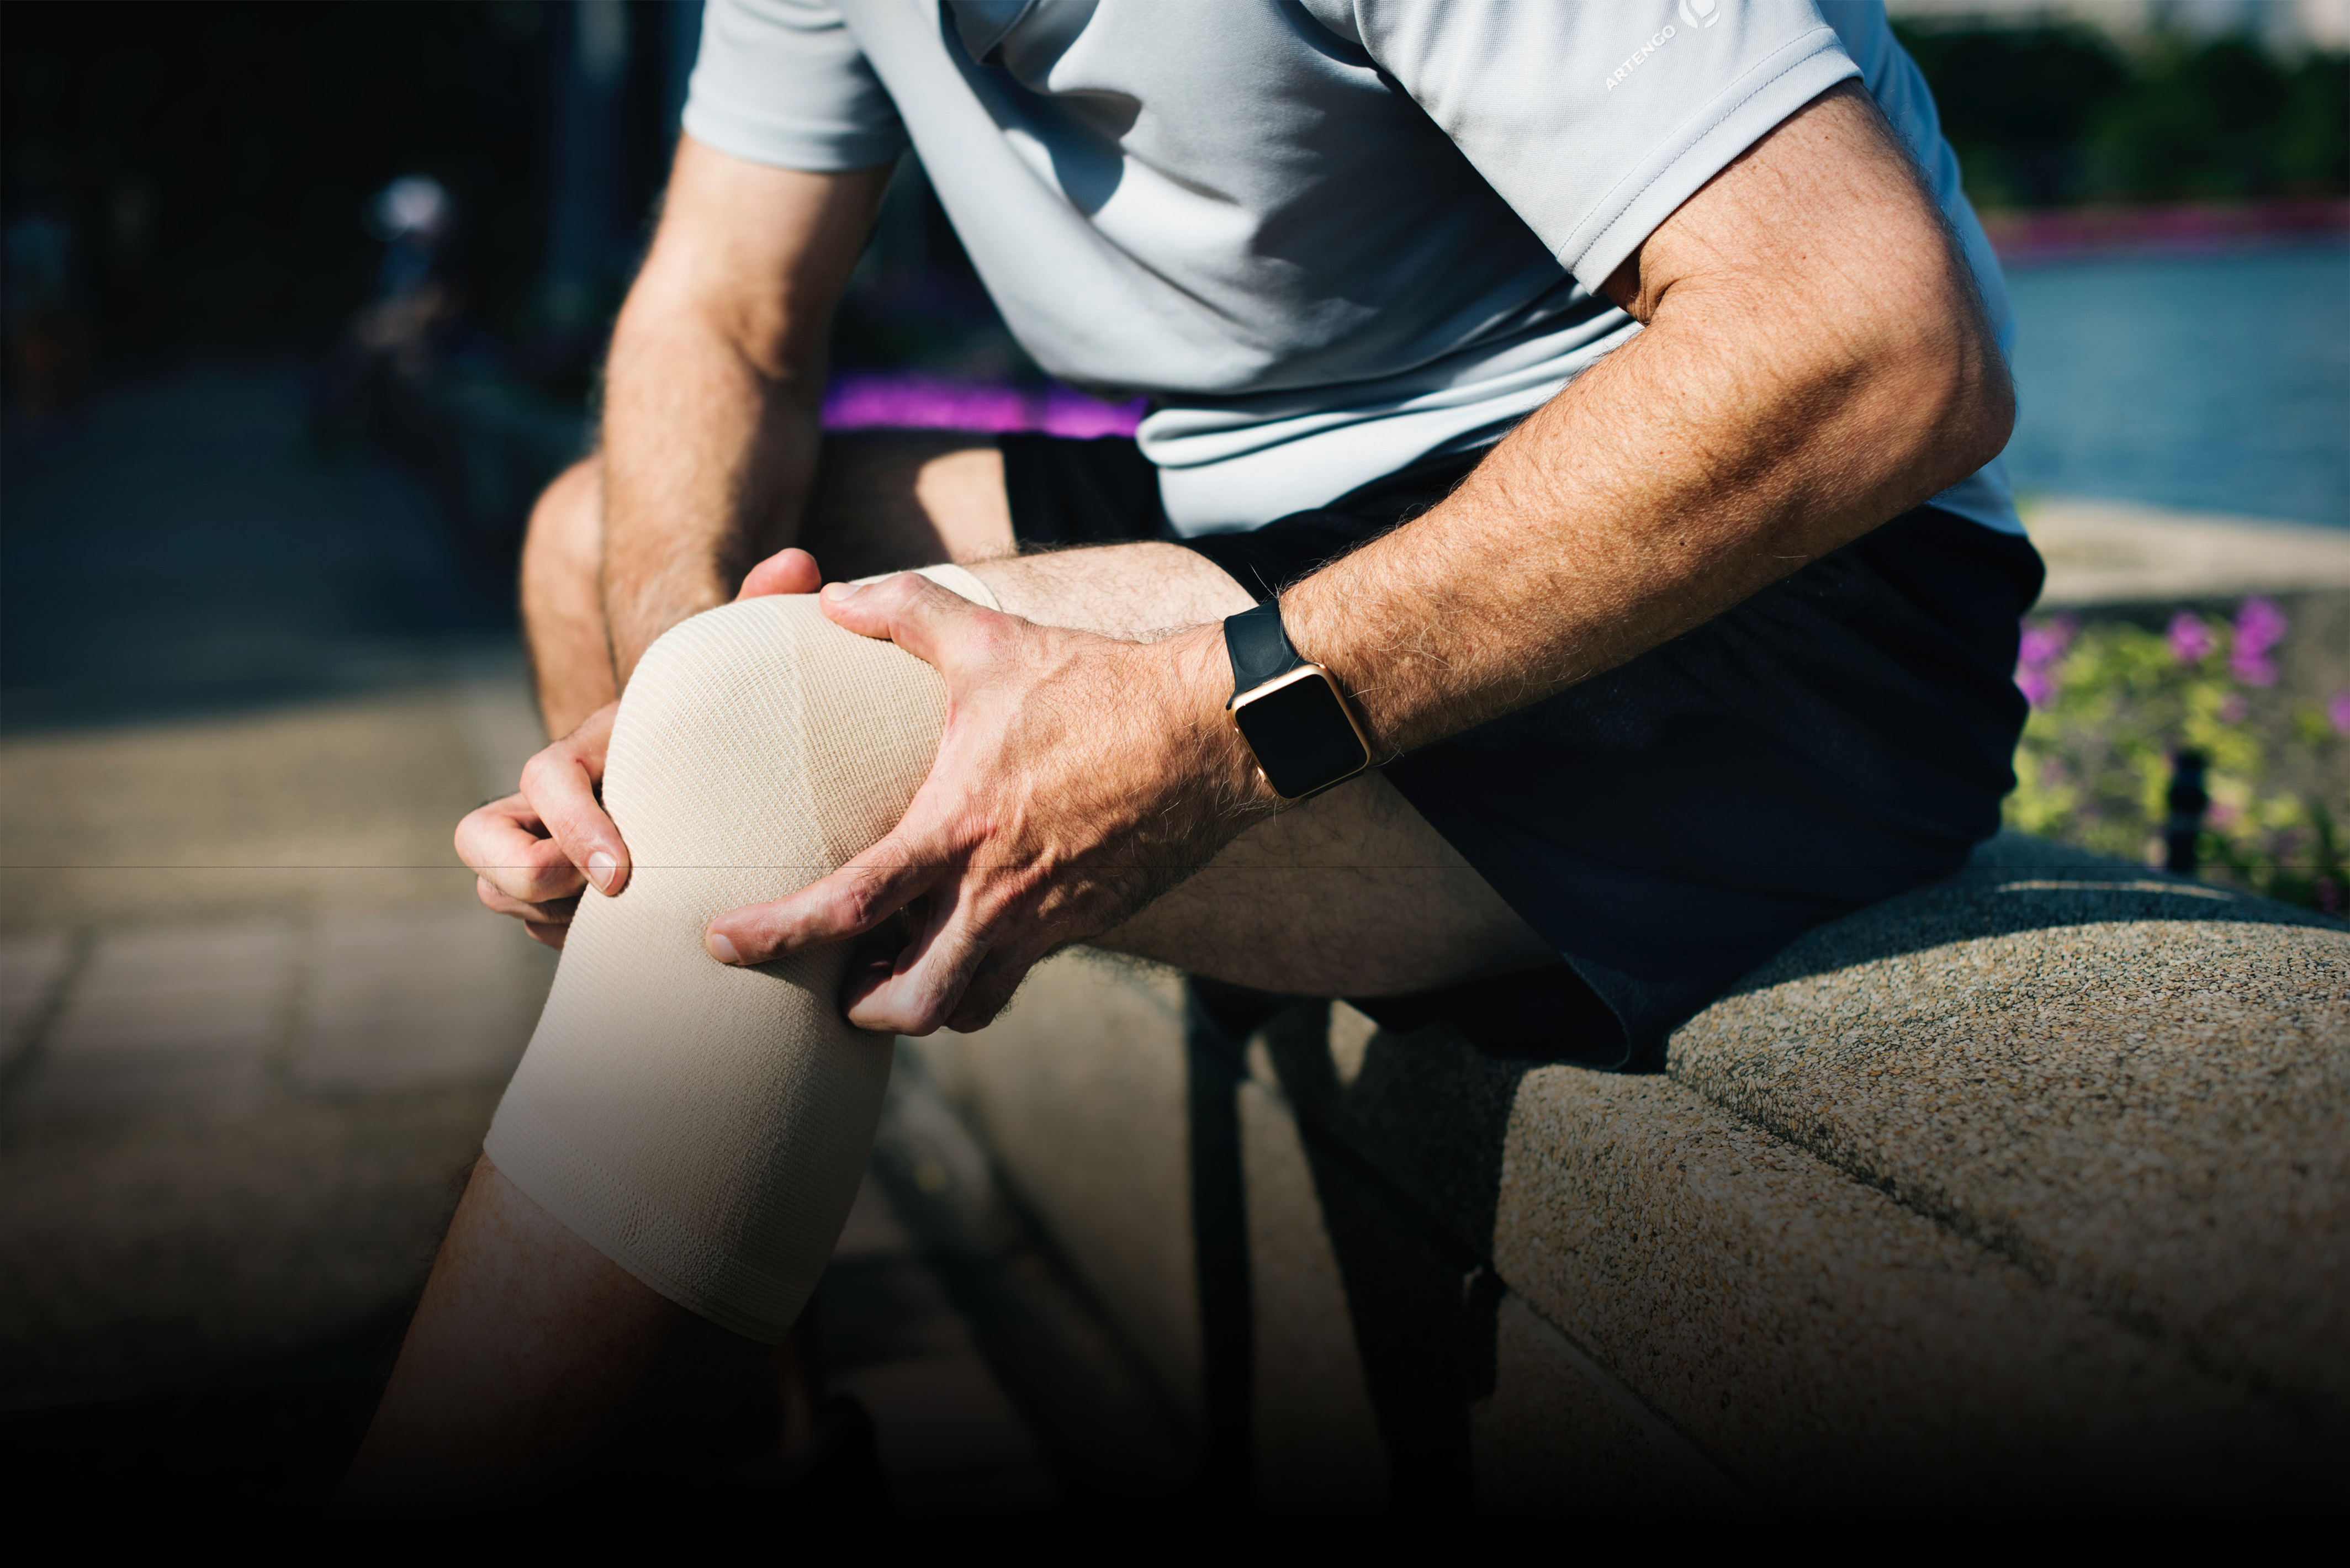 Effective Knee Pain Management Aids & Products